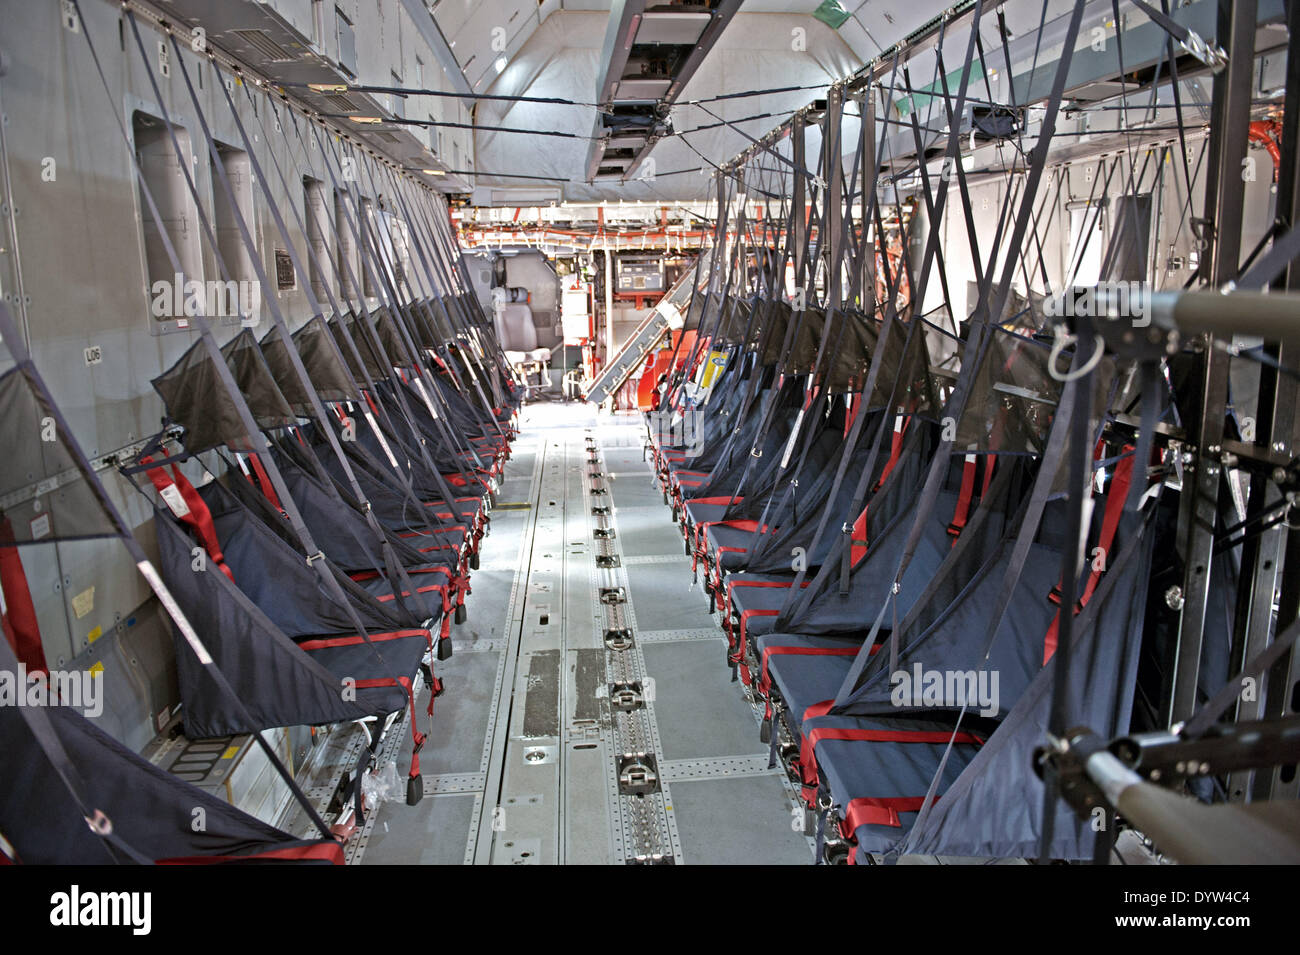 Military transport aircraft interior